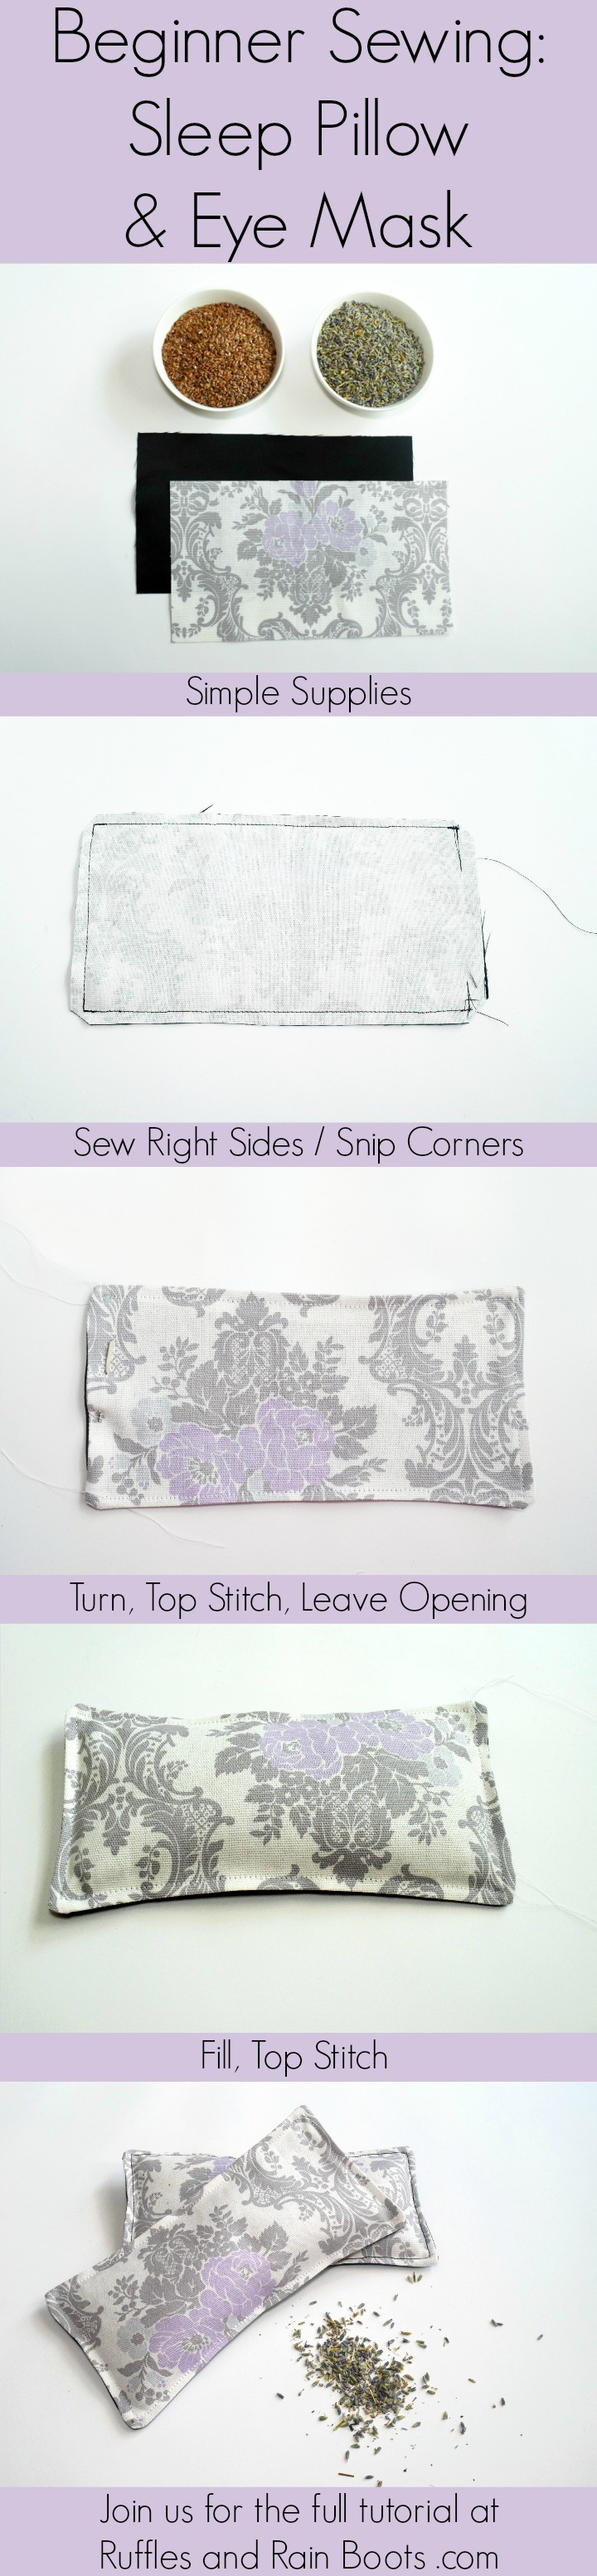 Beginner Sewing Project